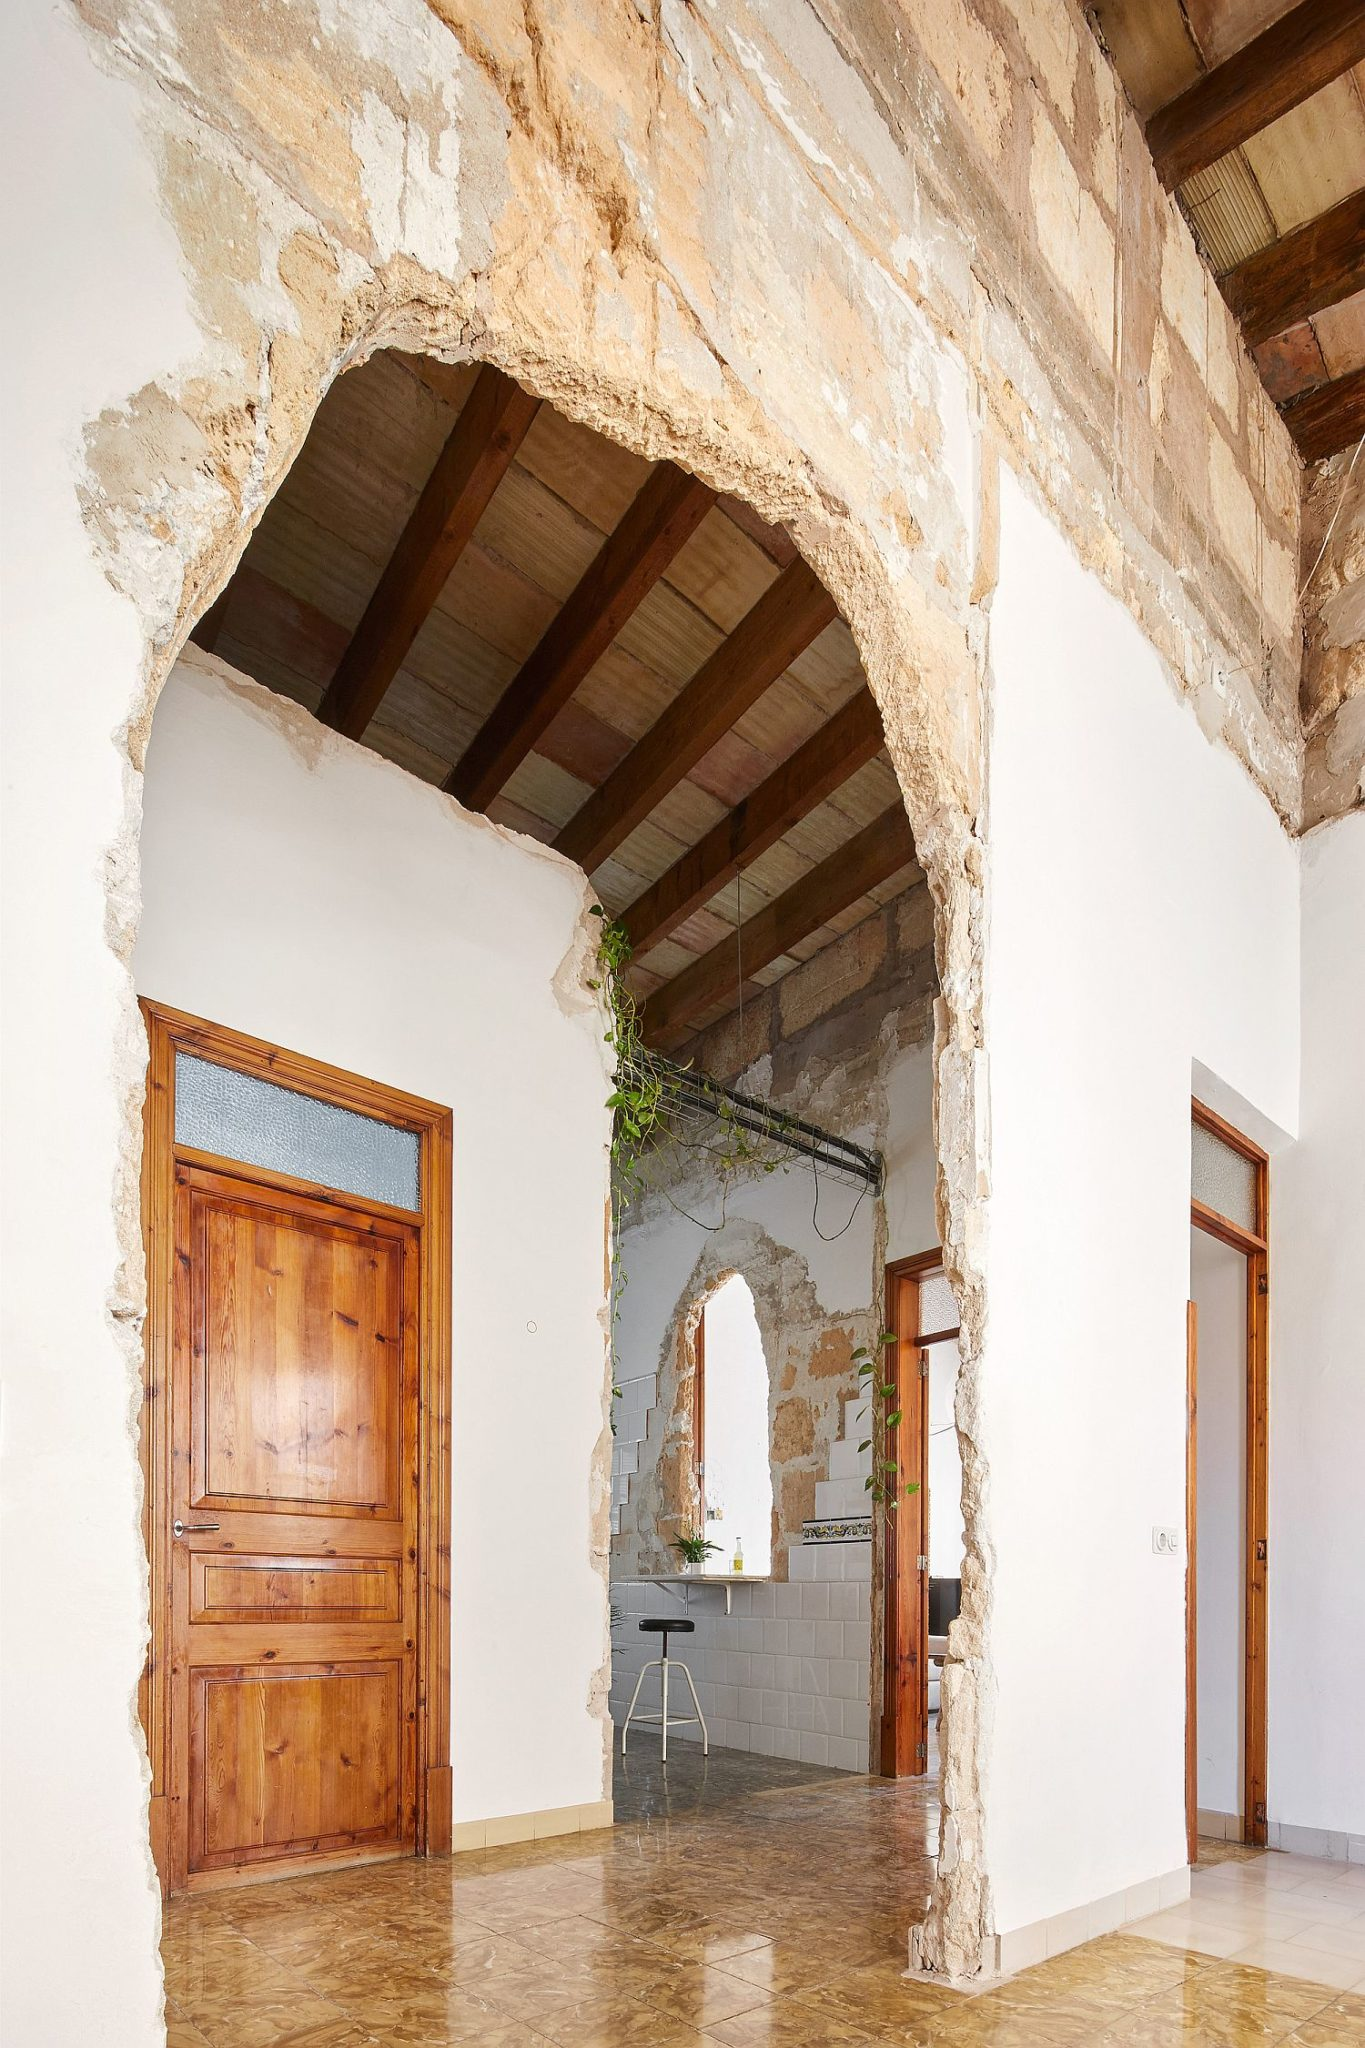 Old archways are left intact and accentuated to create visual contrast